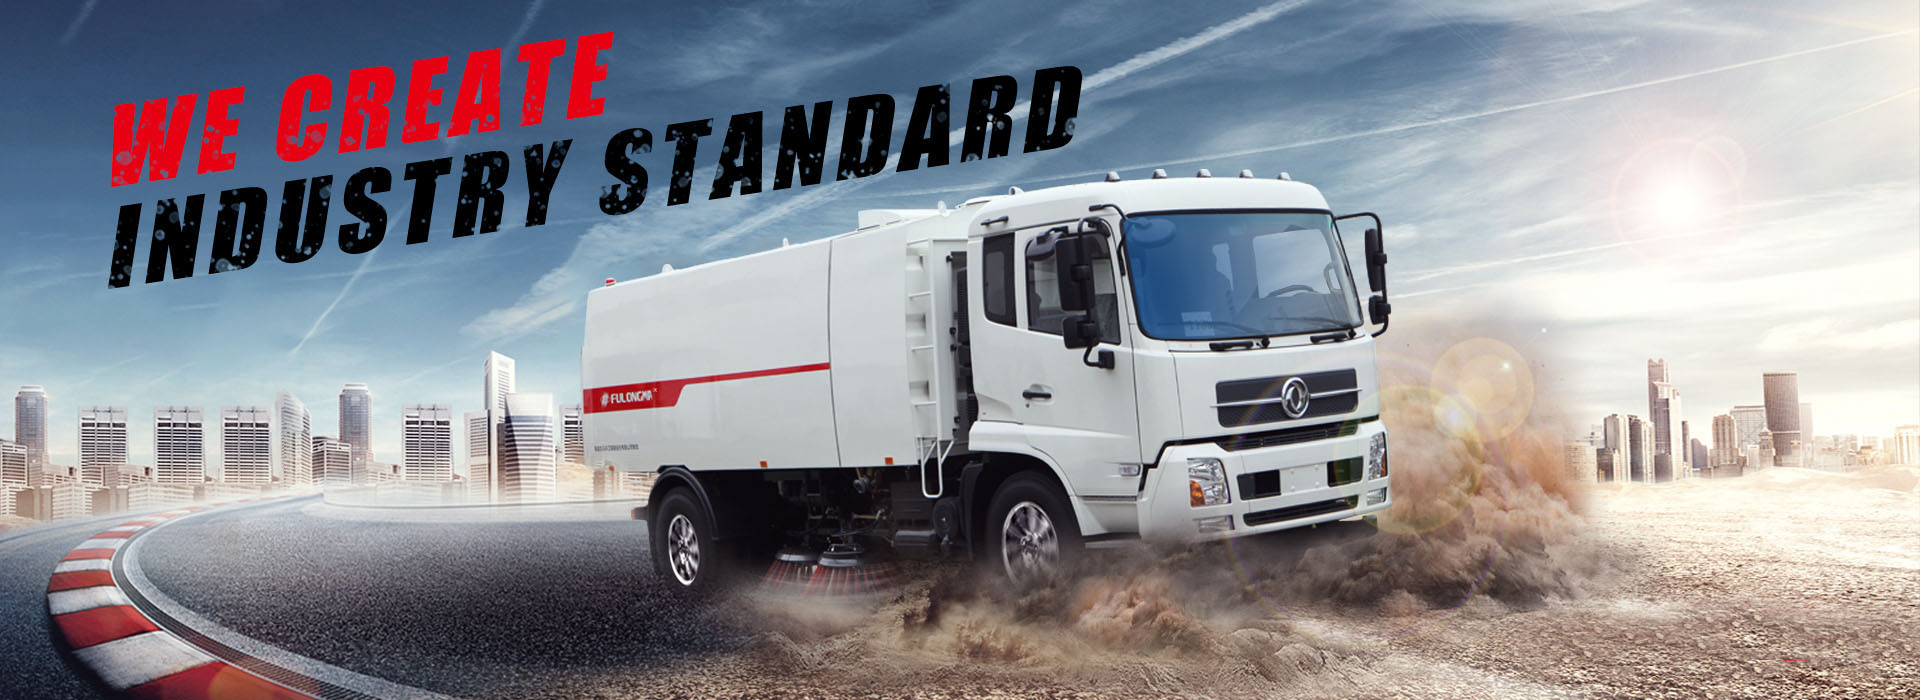 Banner-dongfeng